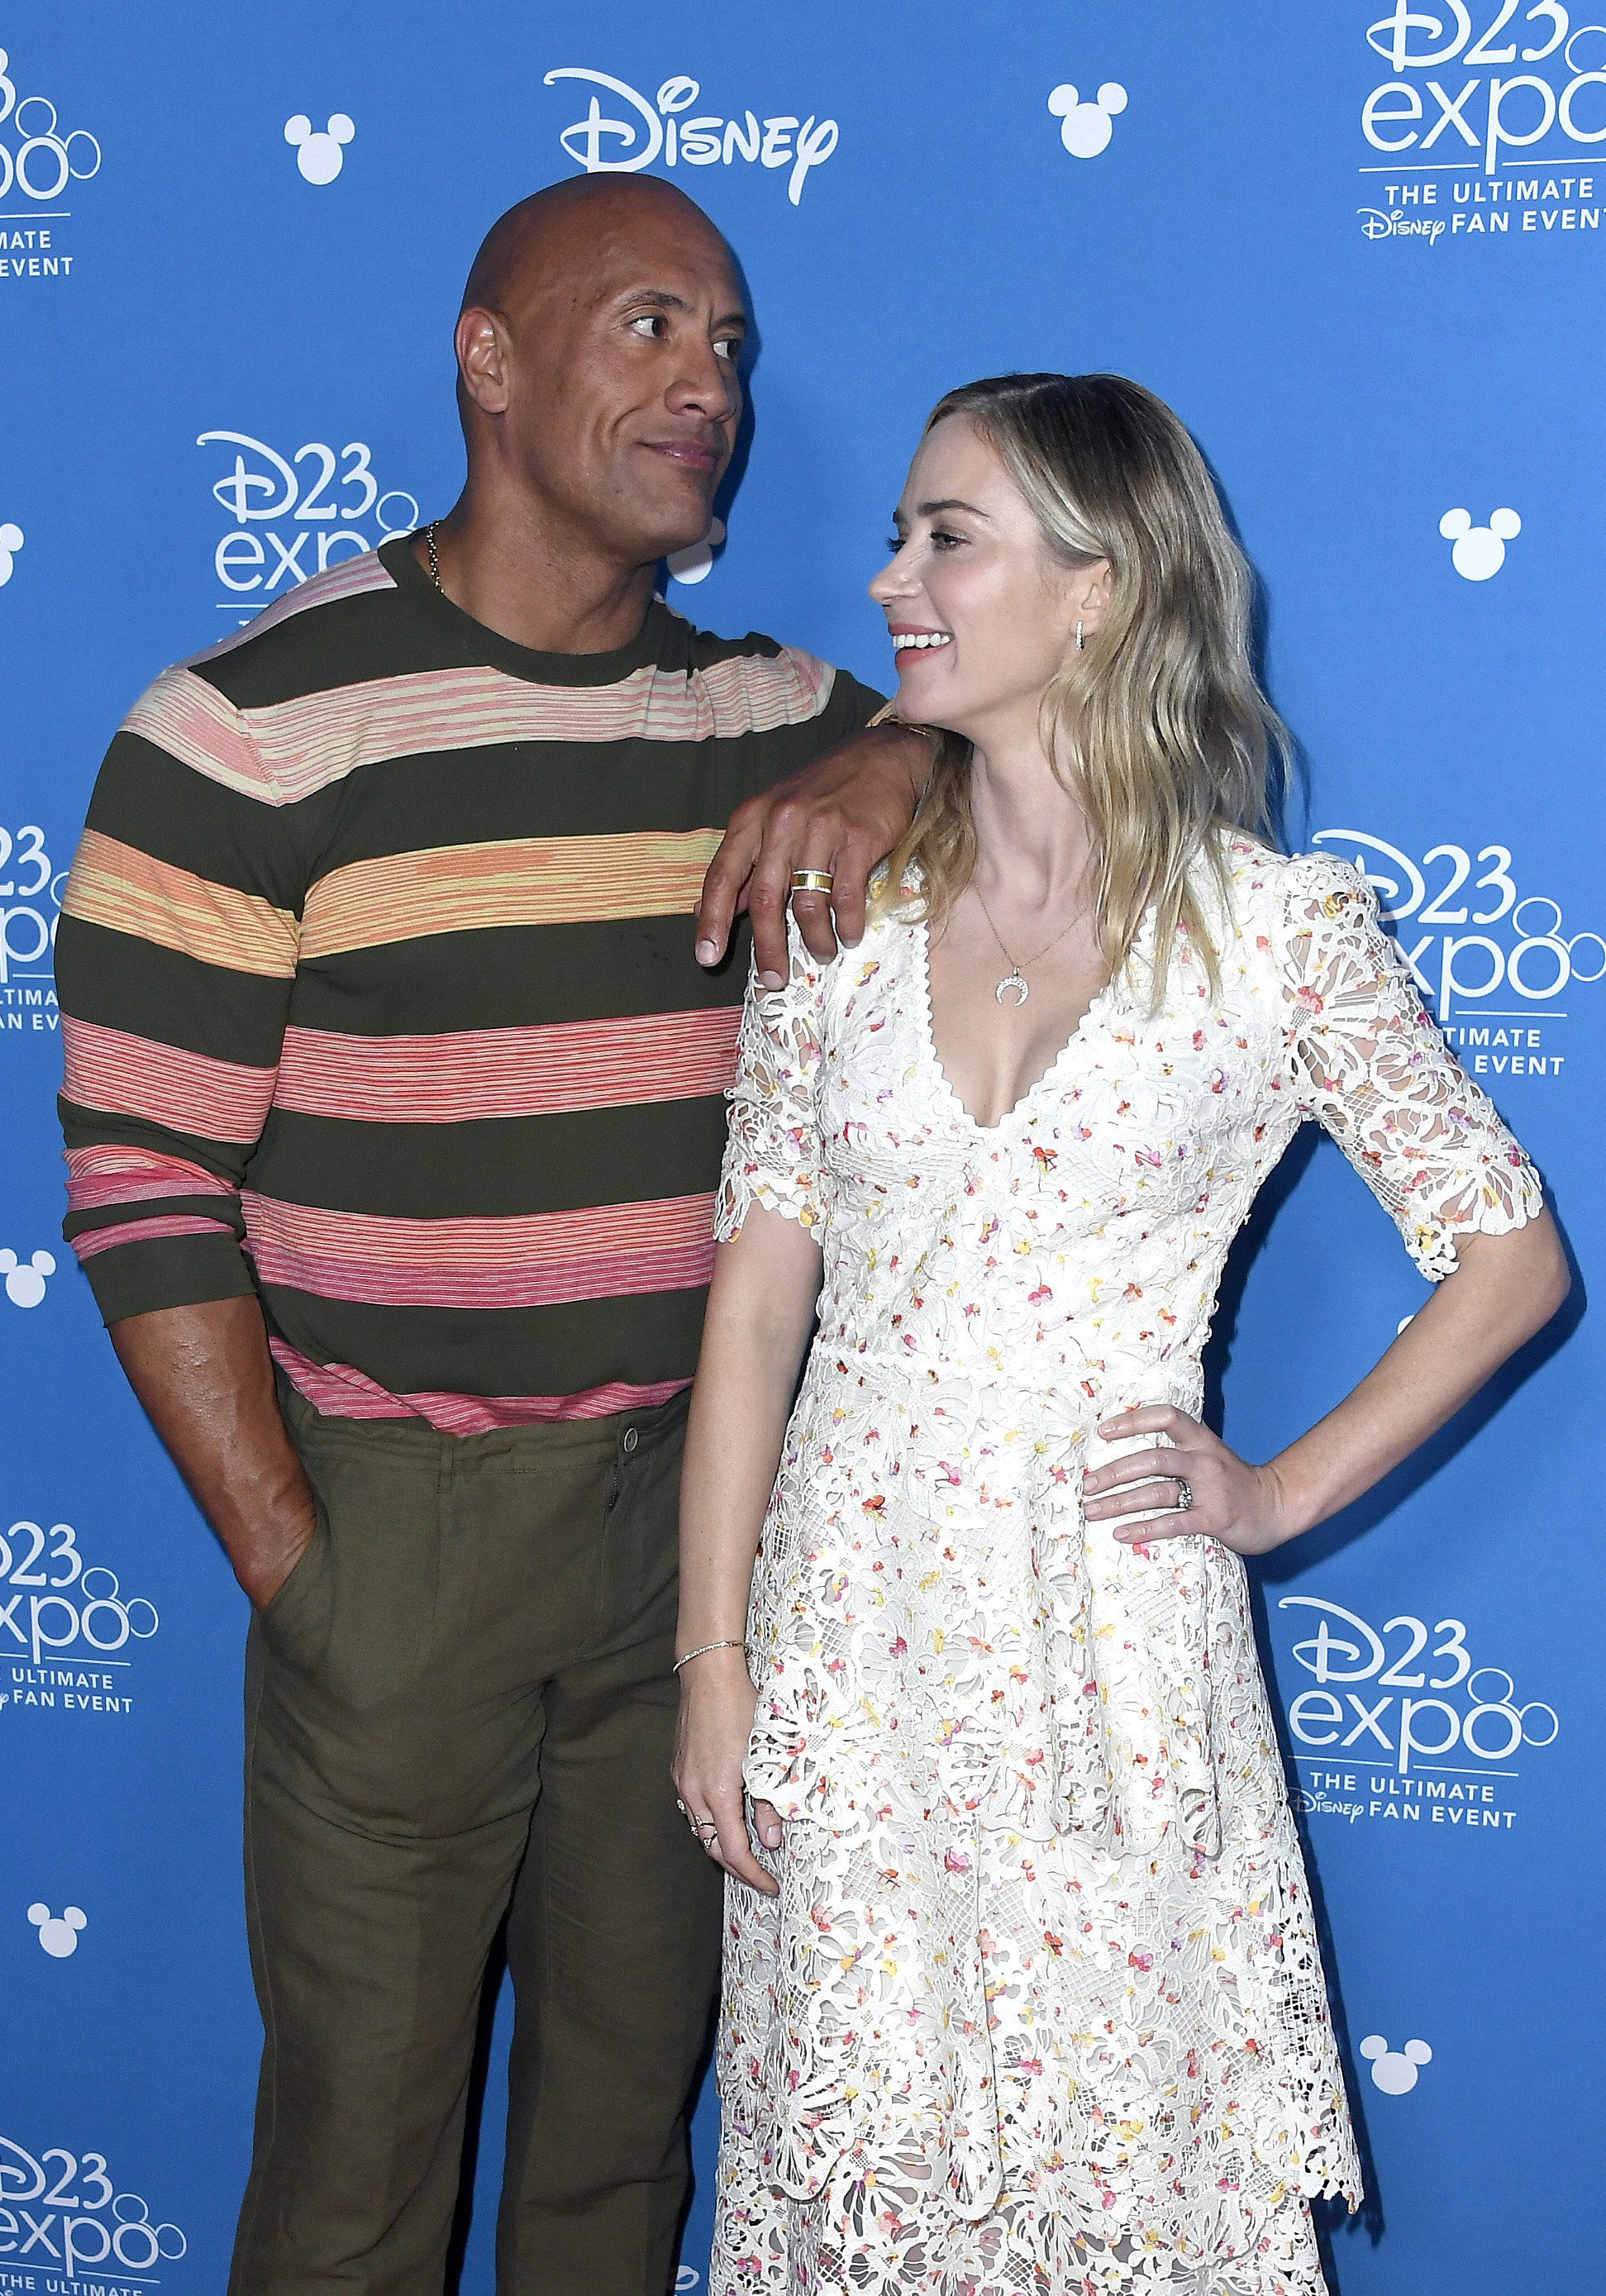 Dwayne Johnson and Emily Blunt at an event for Jungle Cruise (2021)